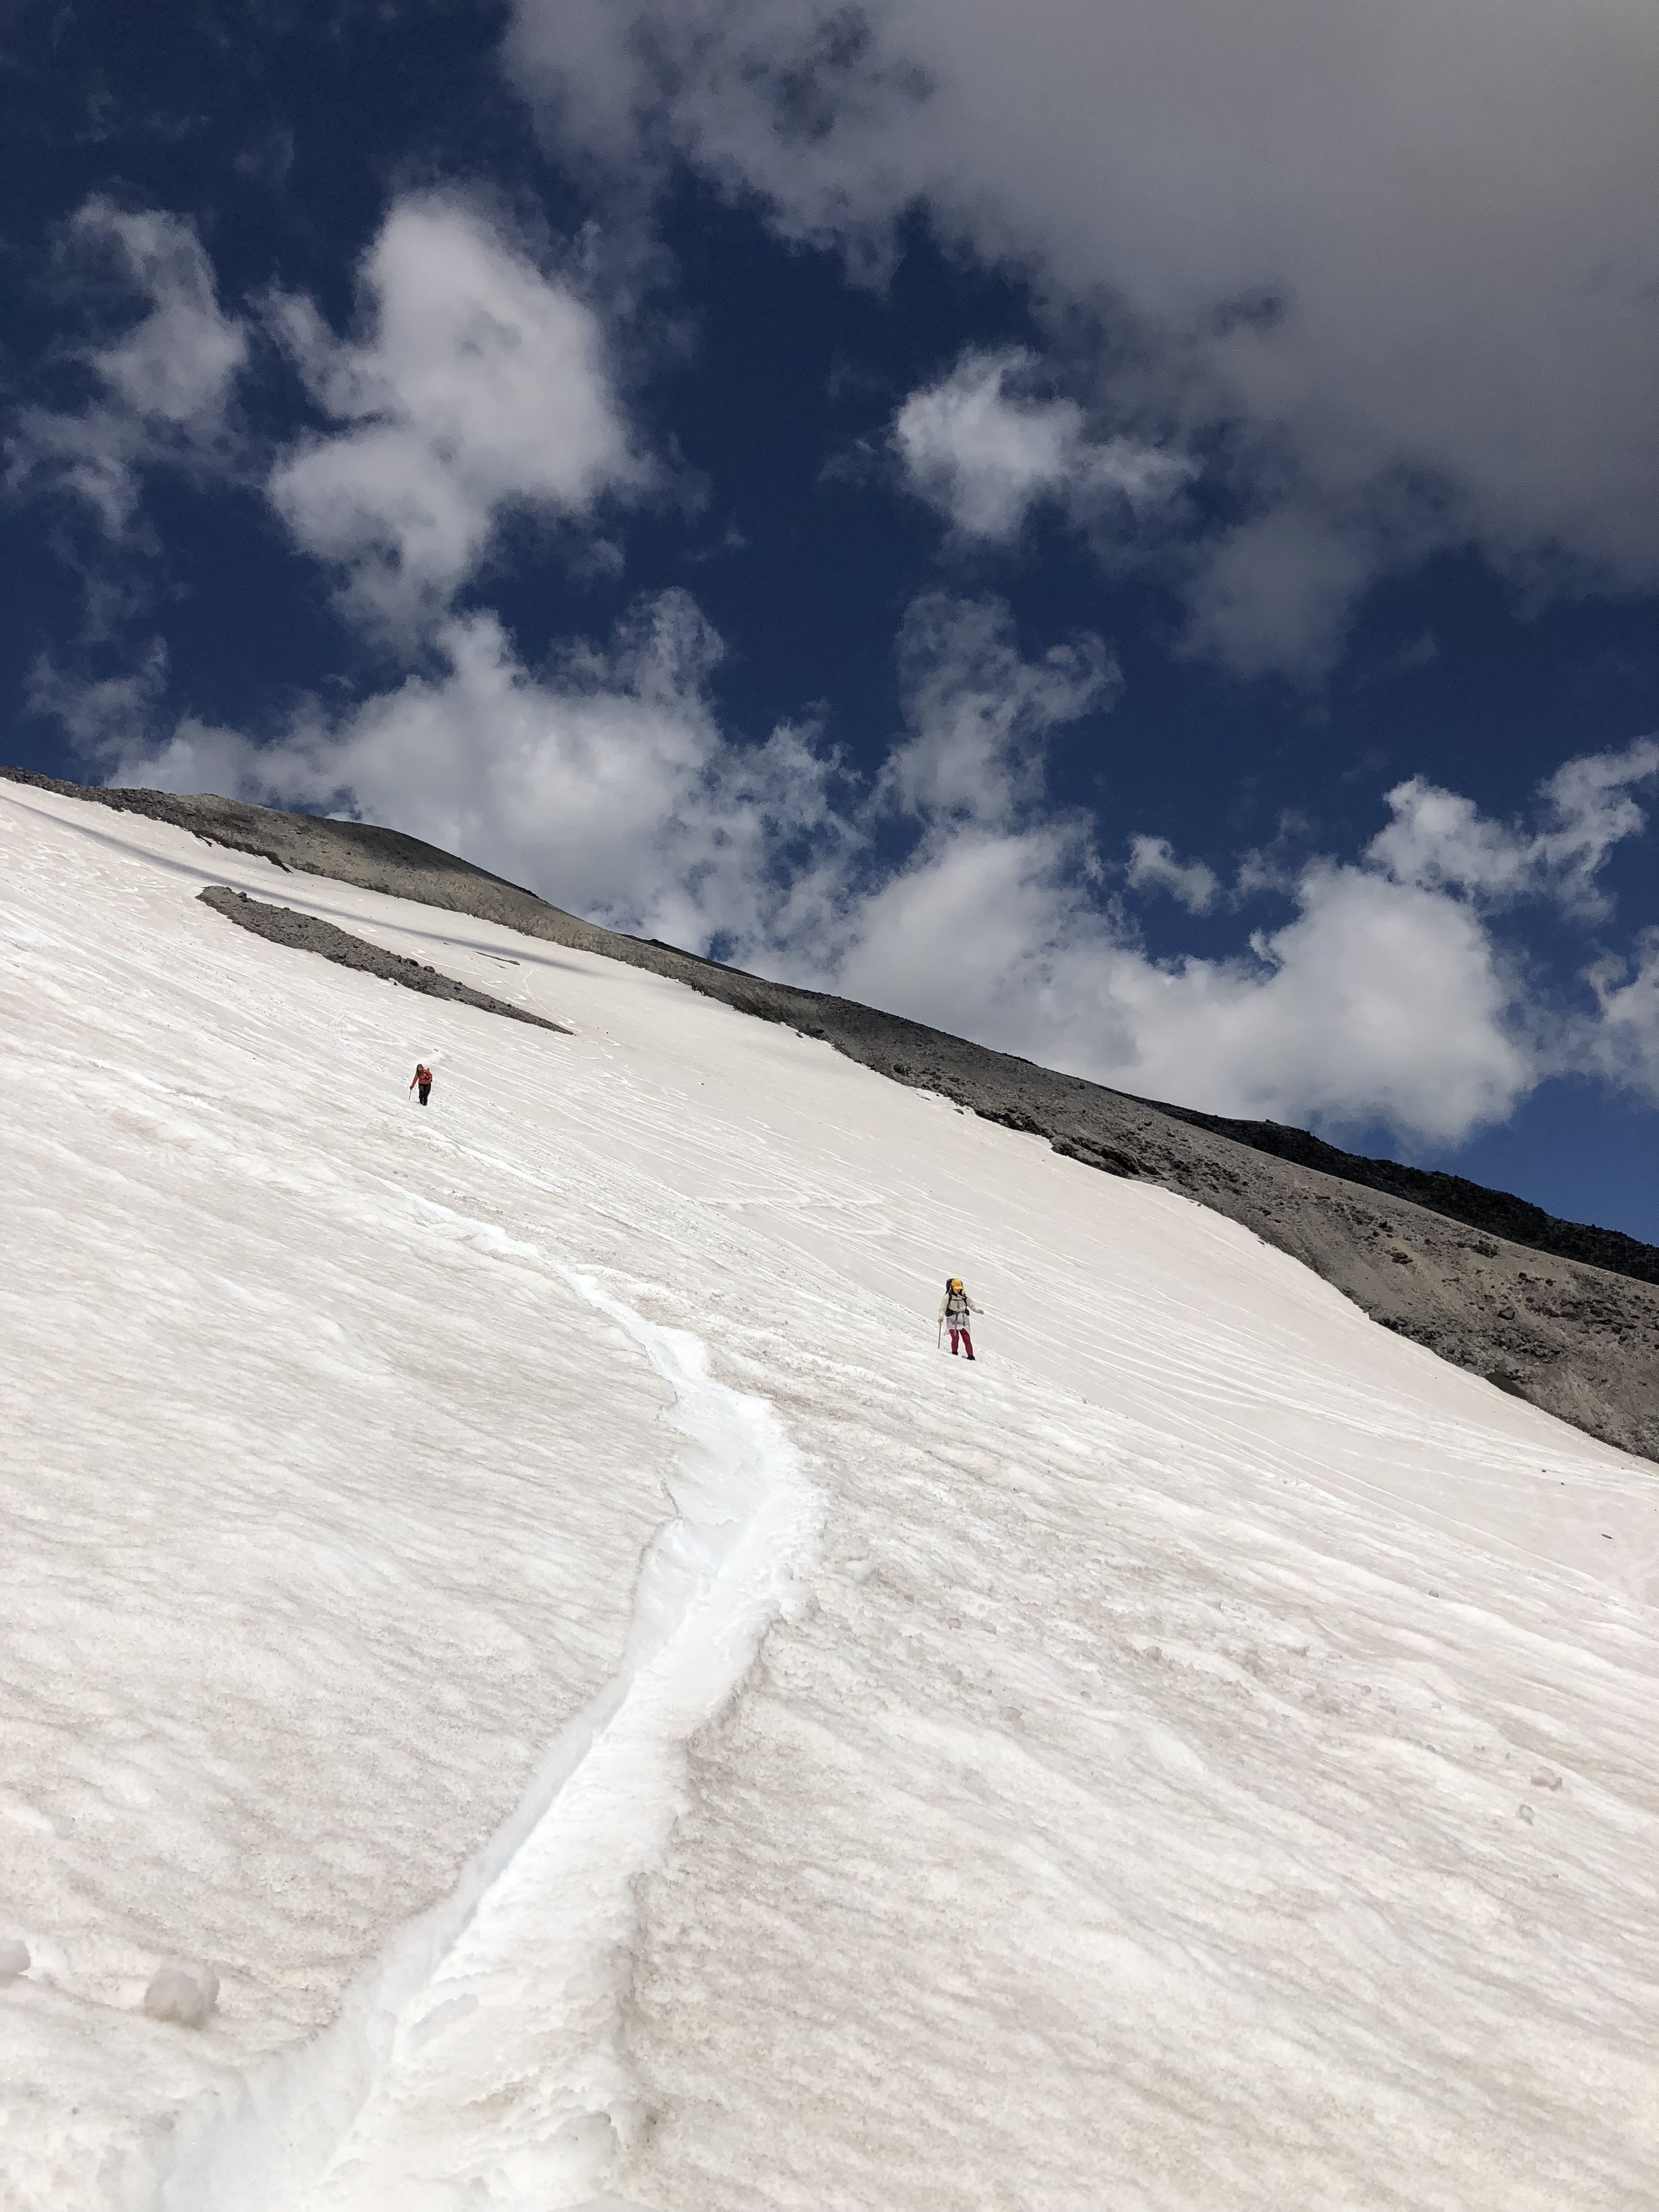 Making my way back to Doris after opting to not glissade down the sketchy steep bit!